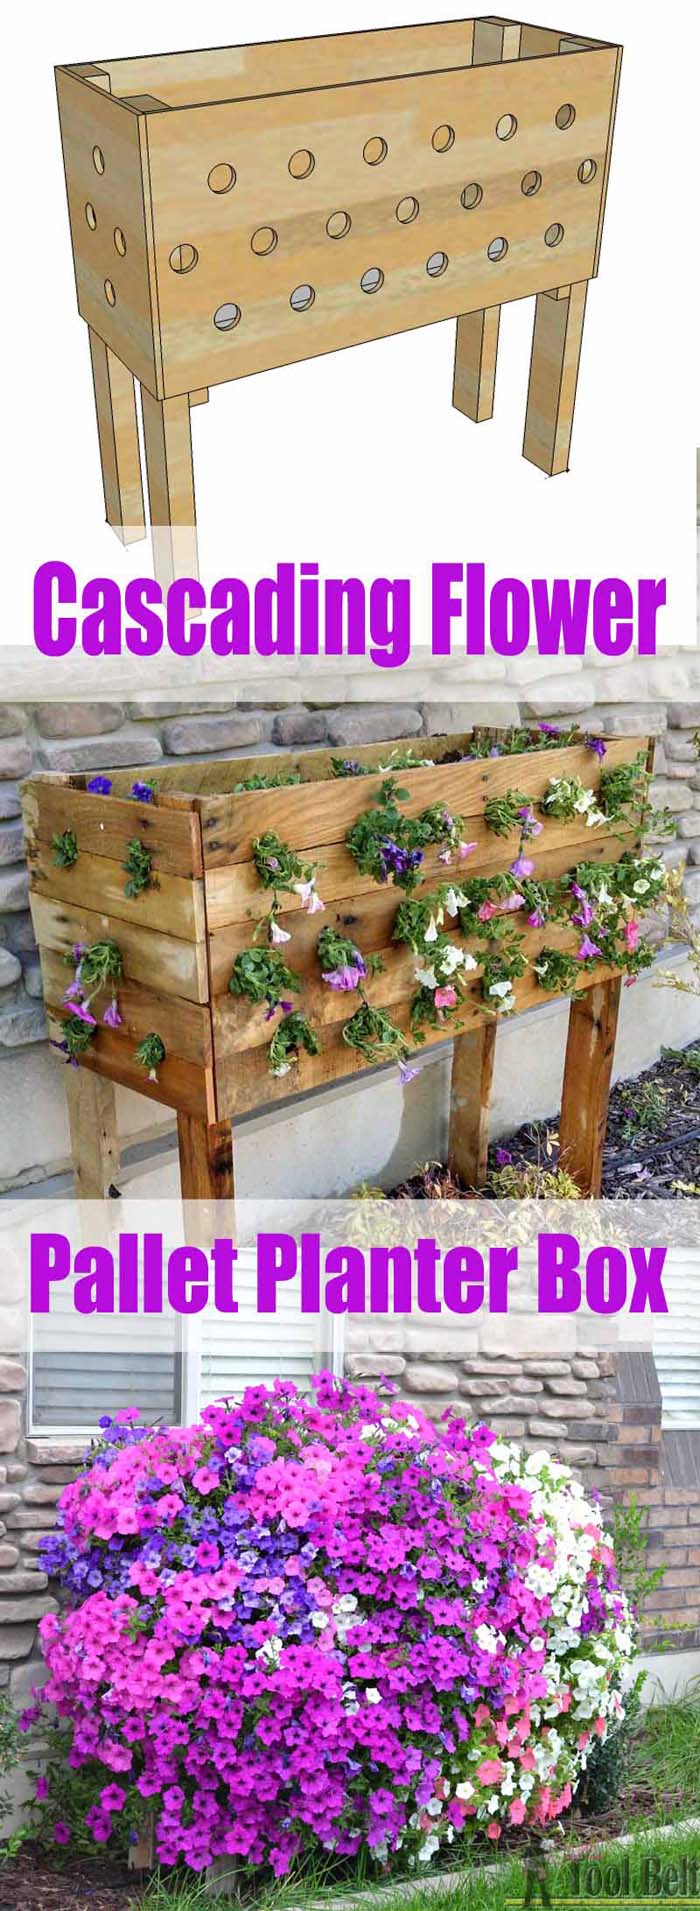 Cascading Flower Wood Pallet Planter Box #diy #planter #wood #flower #pallet #decorhomeideas